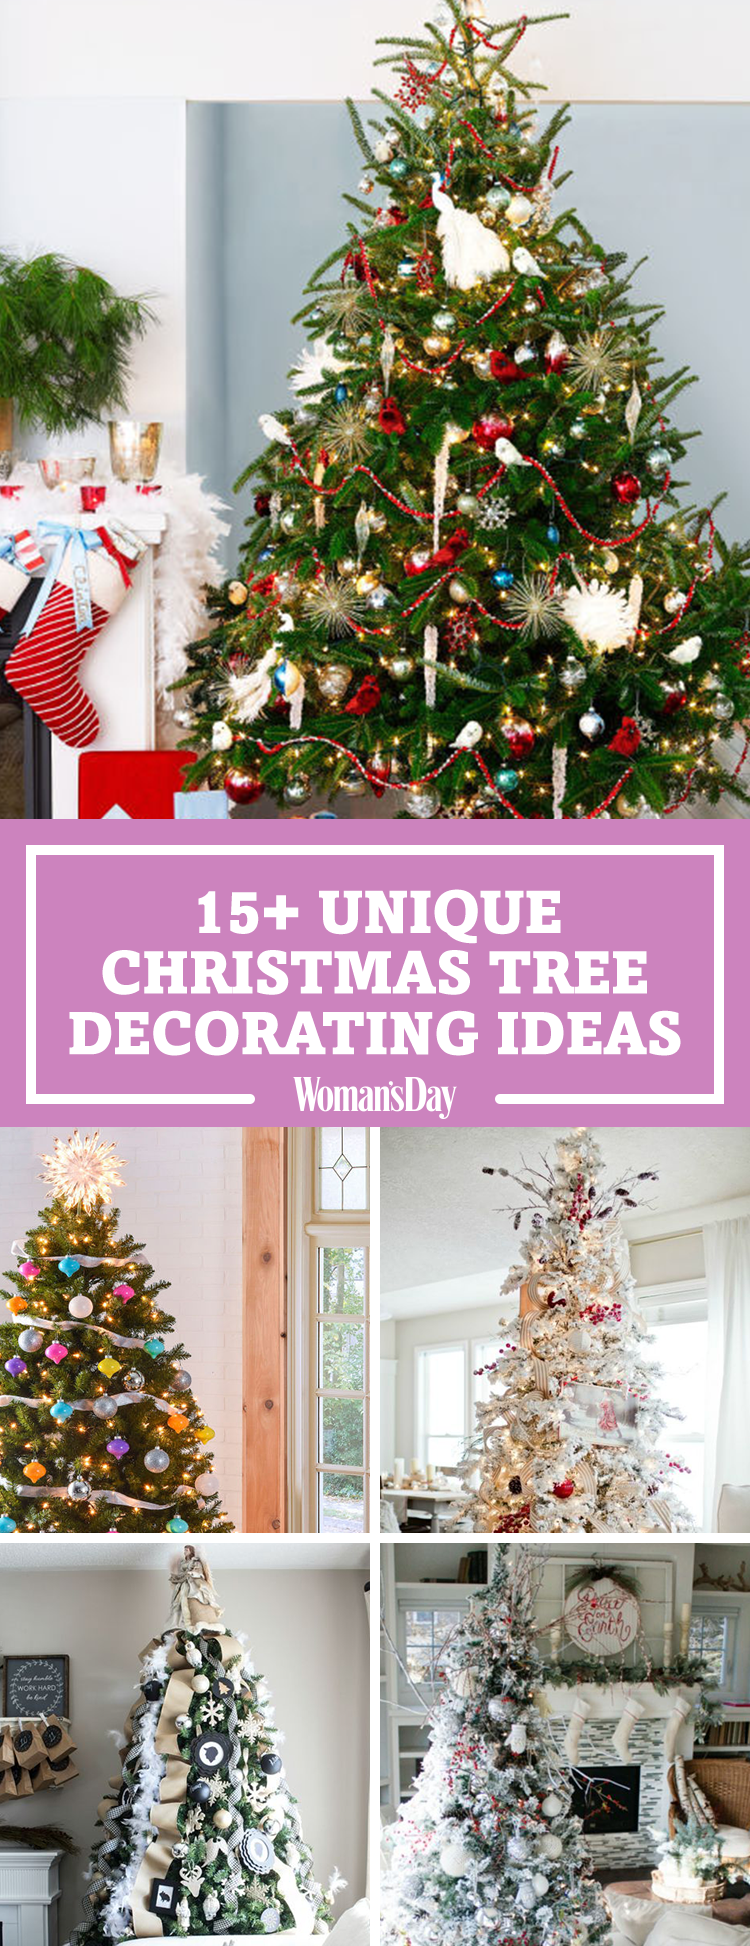 25 unique christmas tree decoration ideas pictures of decorated christmas trees. Black Bedroom Furniture Sets. Home Design Ideas